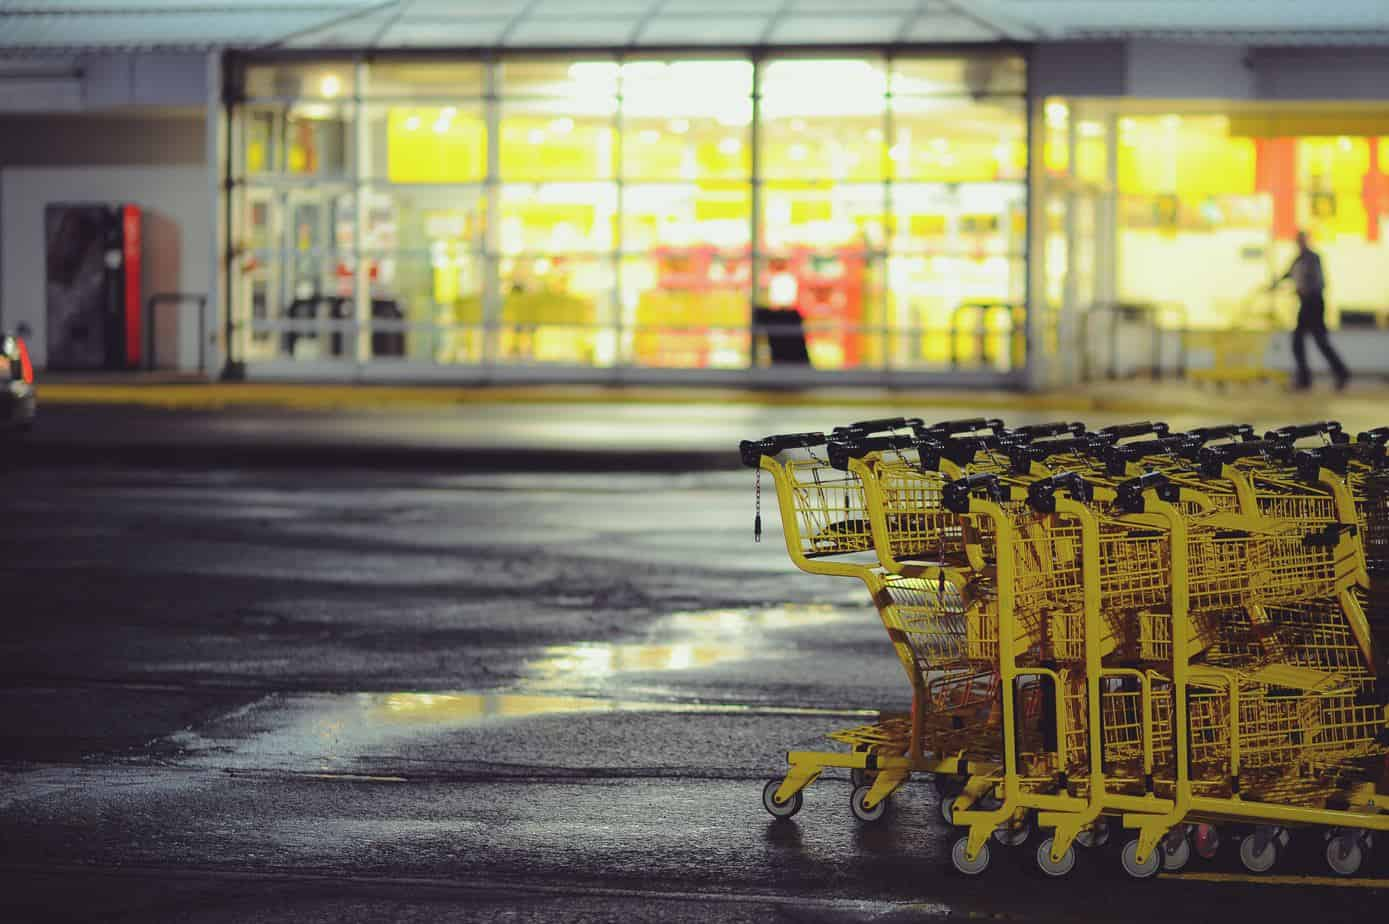 Store and shopping carts